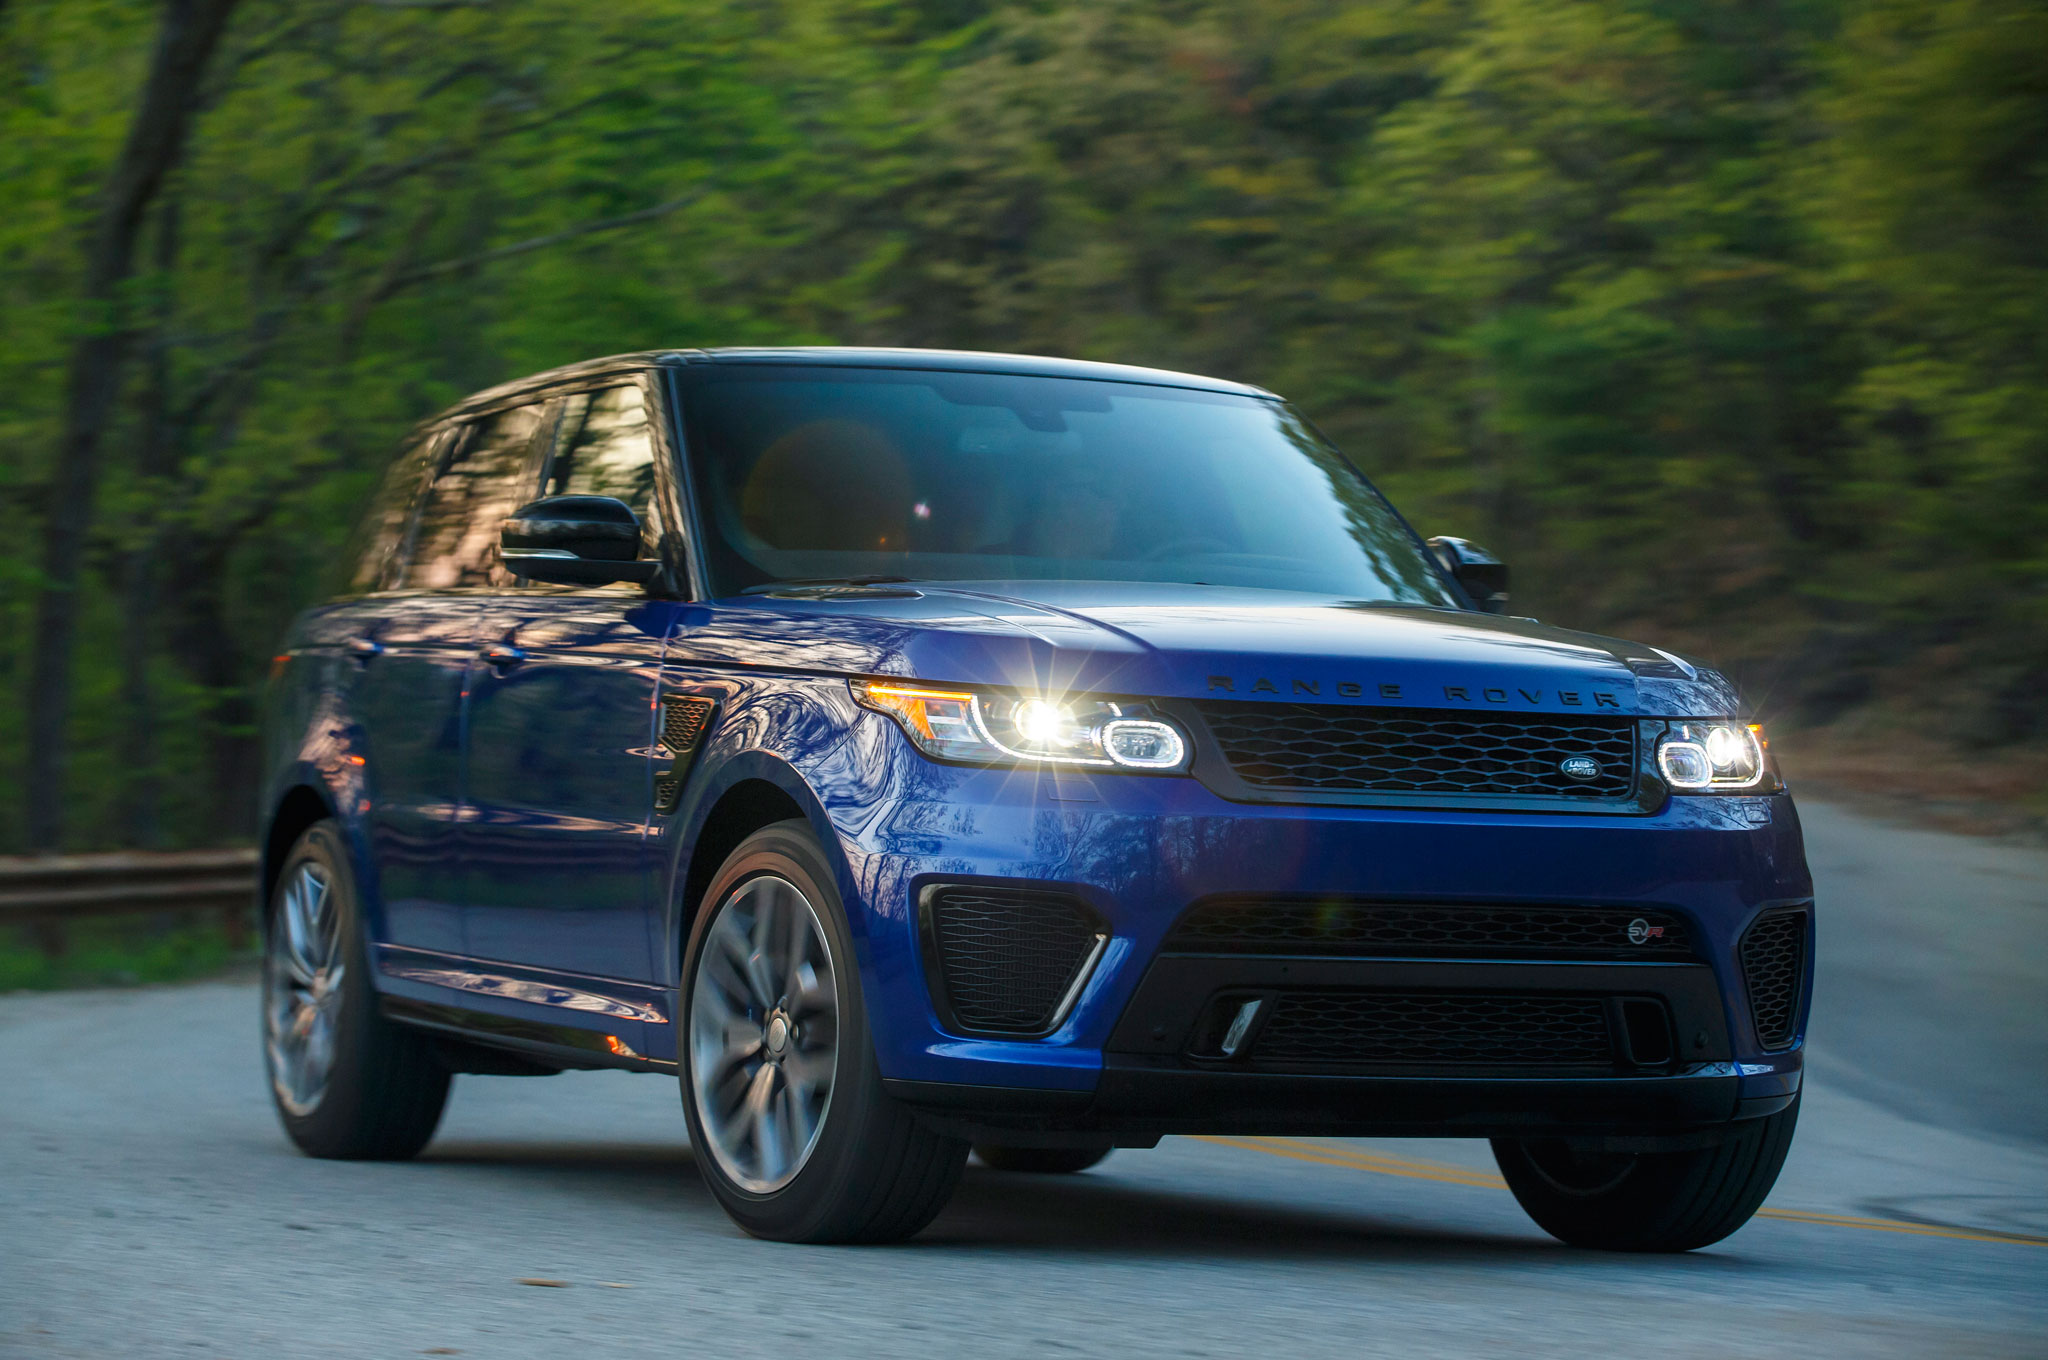 550 hp 2015 range rover sport svr unveiled priced at 111 400. Black Bedroom Furniture Sets. Home Design Ideas